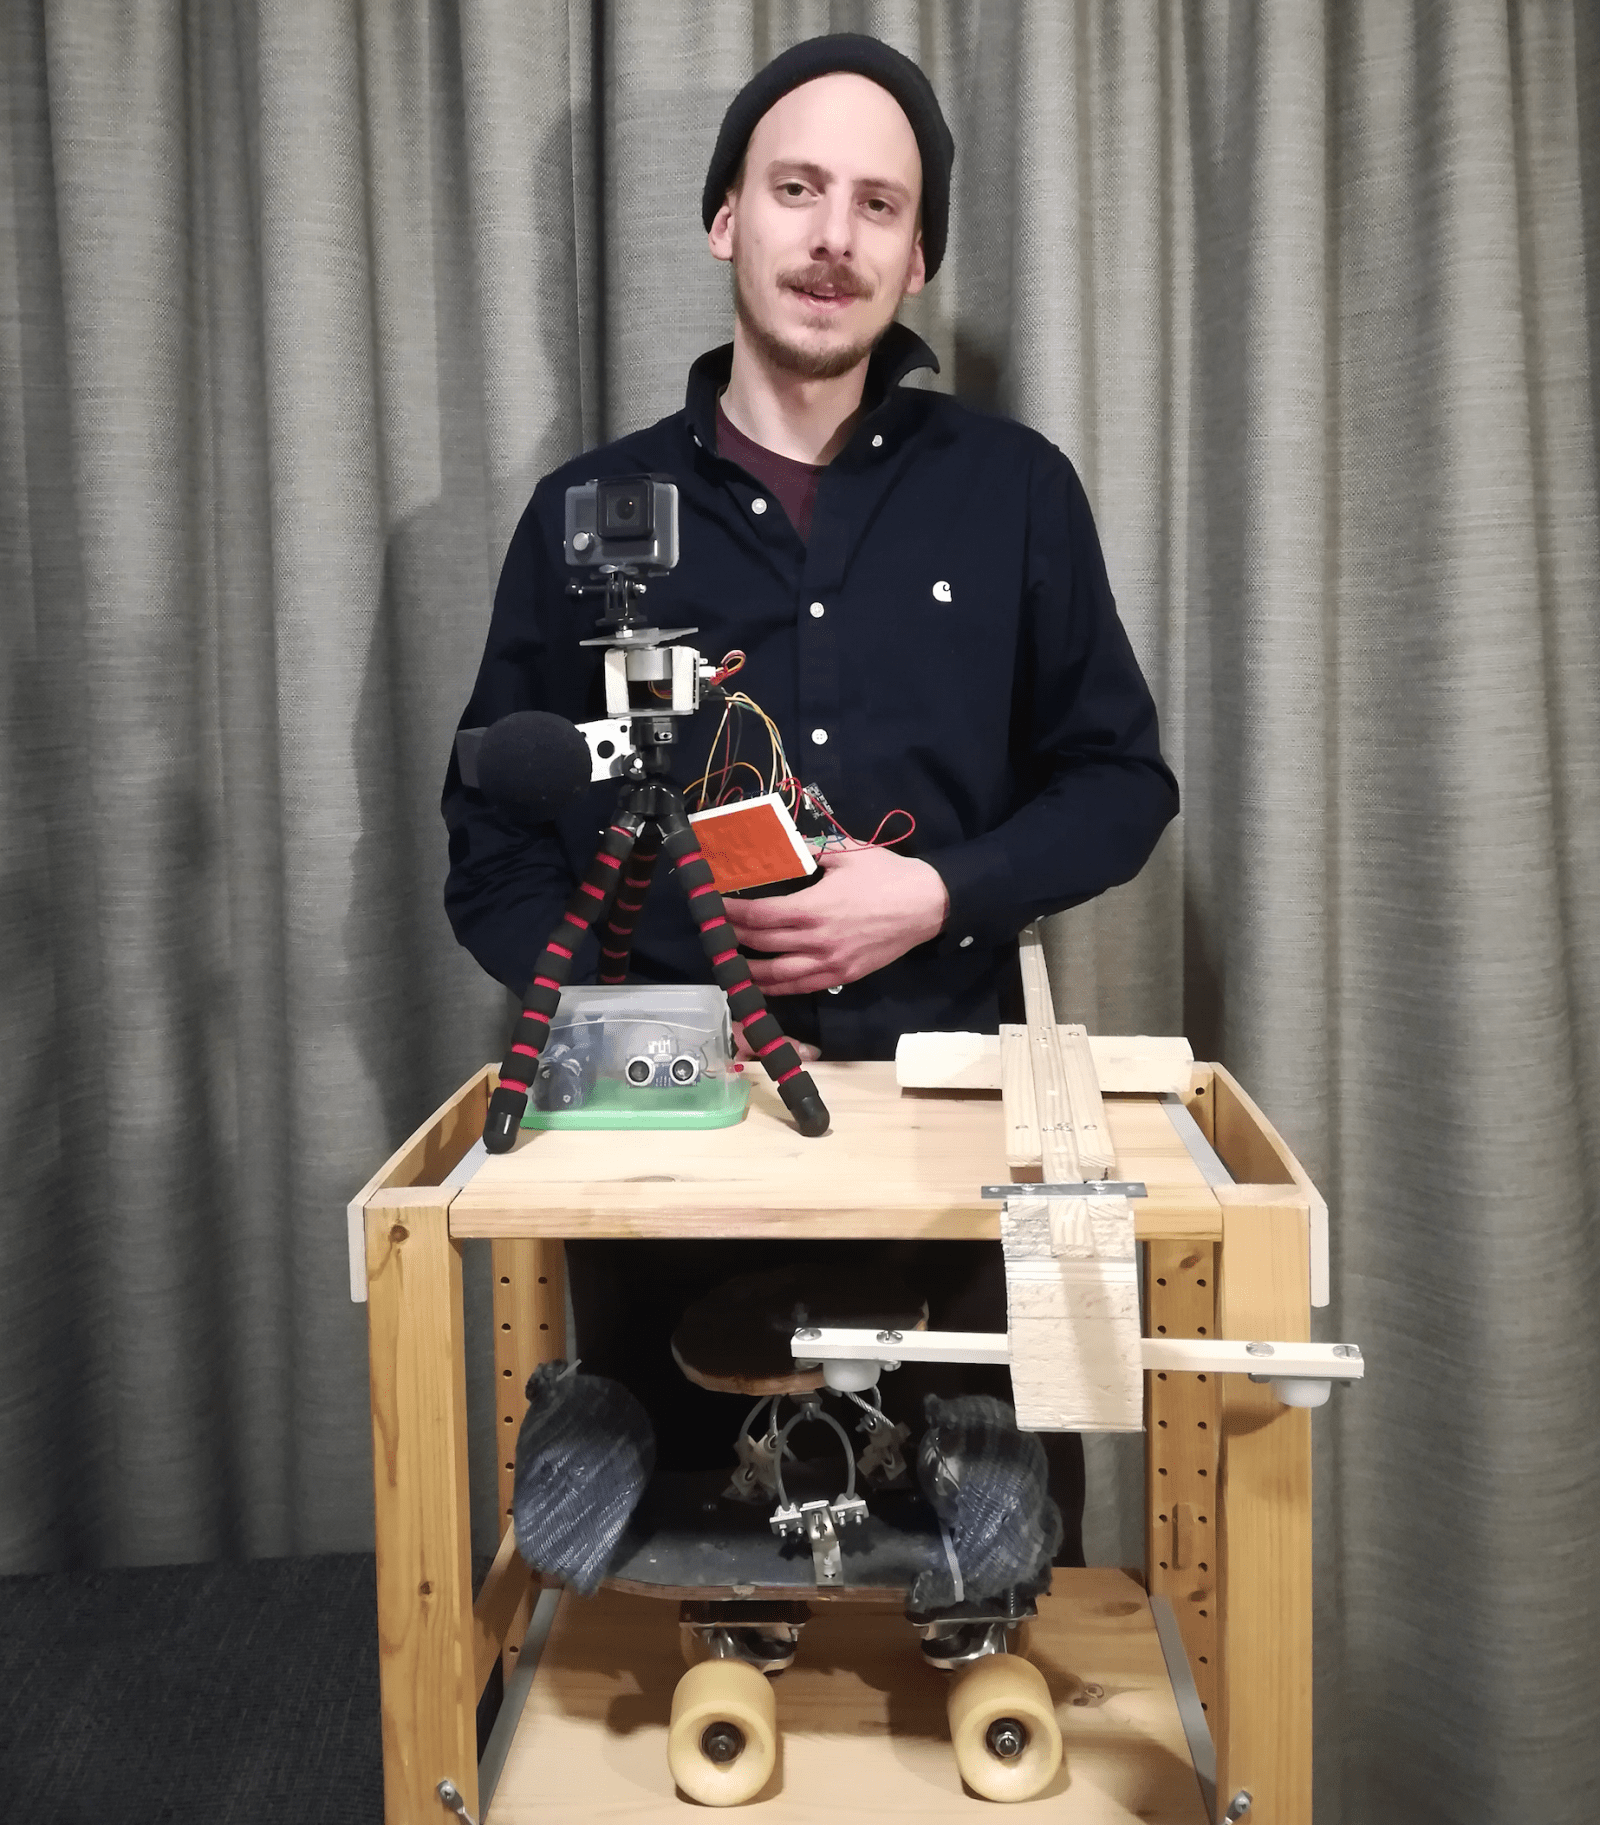 GO FILM YOURSELF: INTERVIEW WITH ROBOTICS ENGINEER MICHIEL GOOSSENS